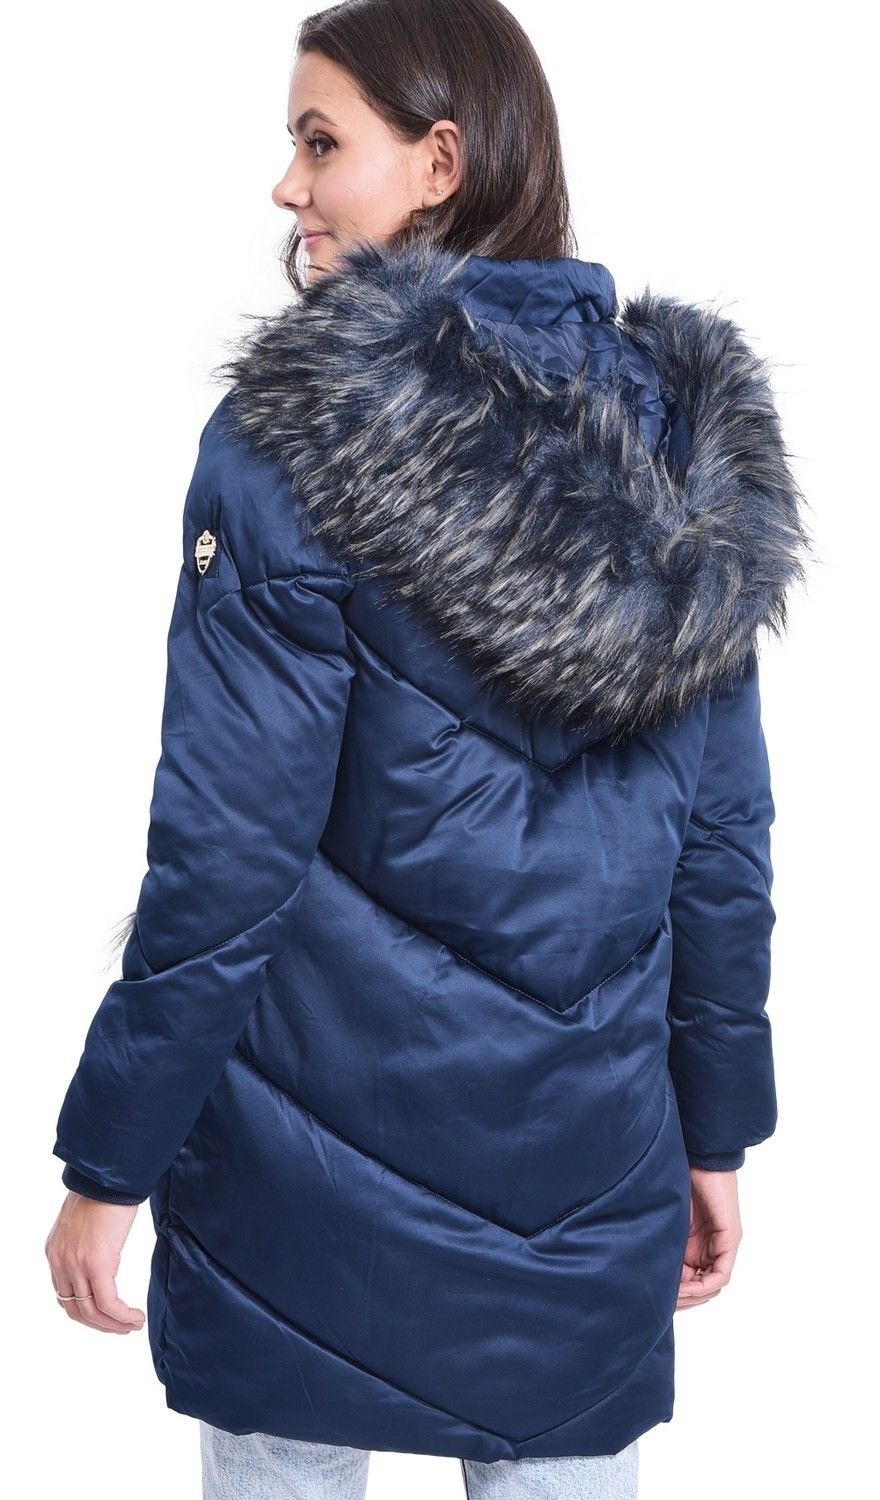 Assuili Long Puffer Jacket with Faux Fur Panel in Navy